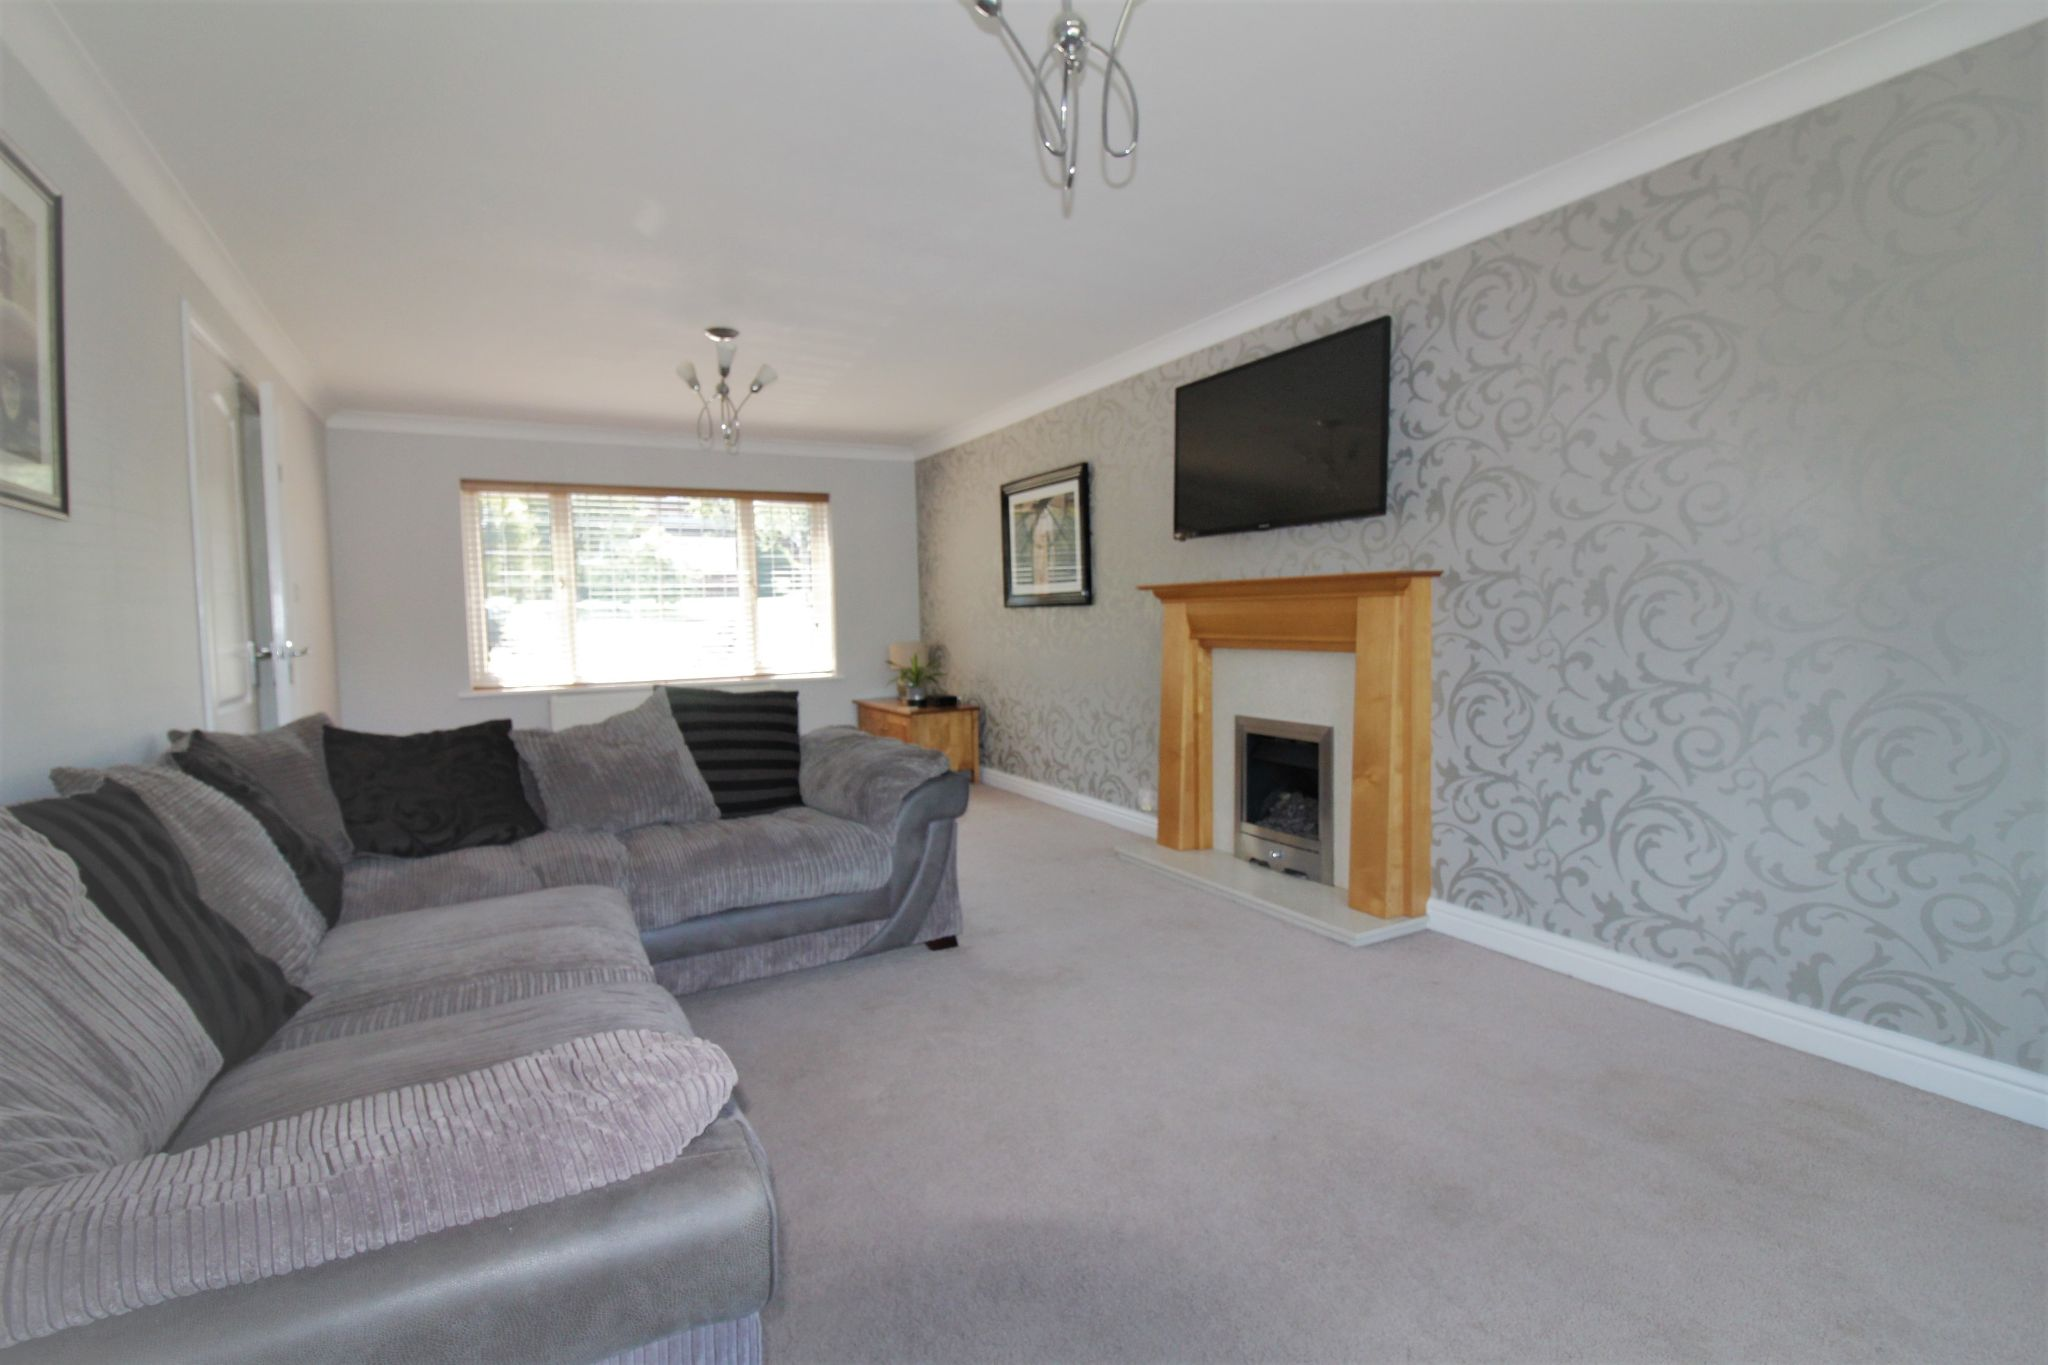 6 bedroom detached house For Sale in Solihull - Photograph 4.